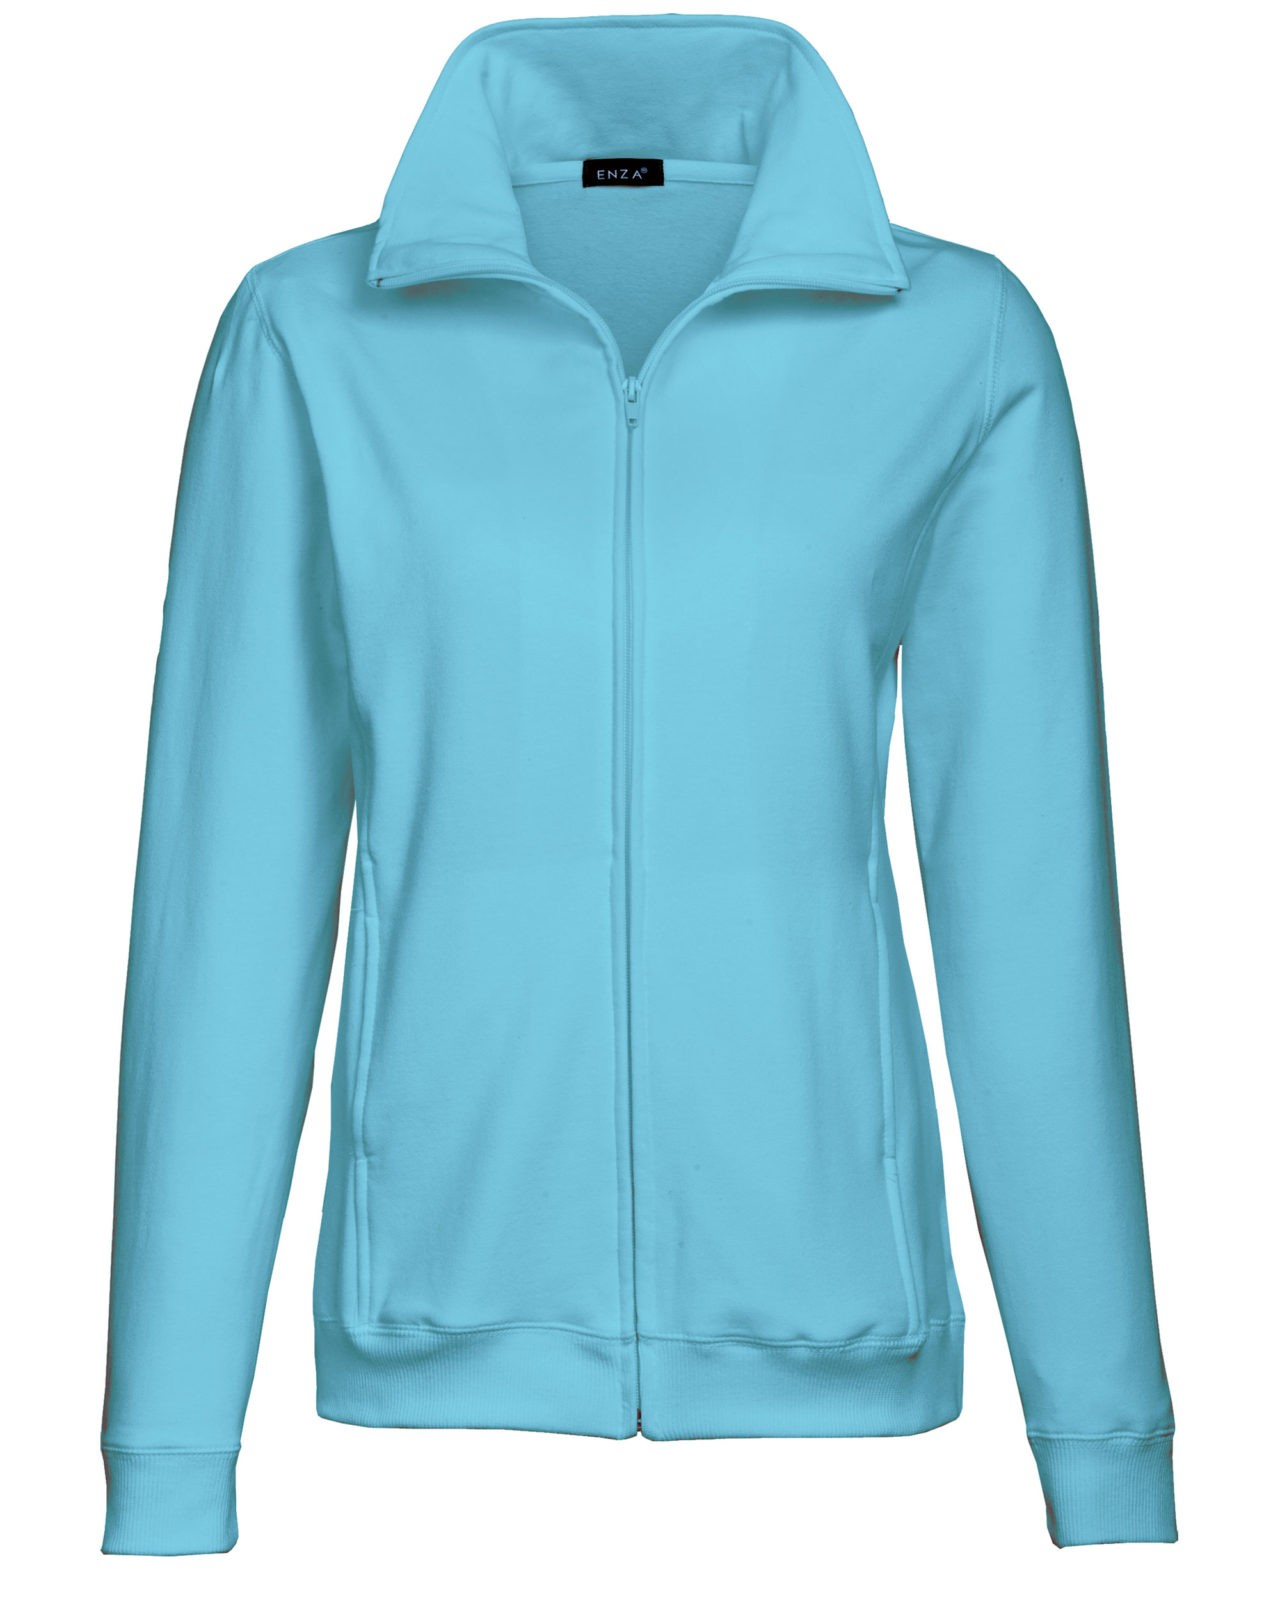 Ez337 Enza Ladies Relaxed Fit Full Zip Jacket Henry Ford